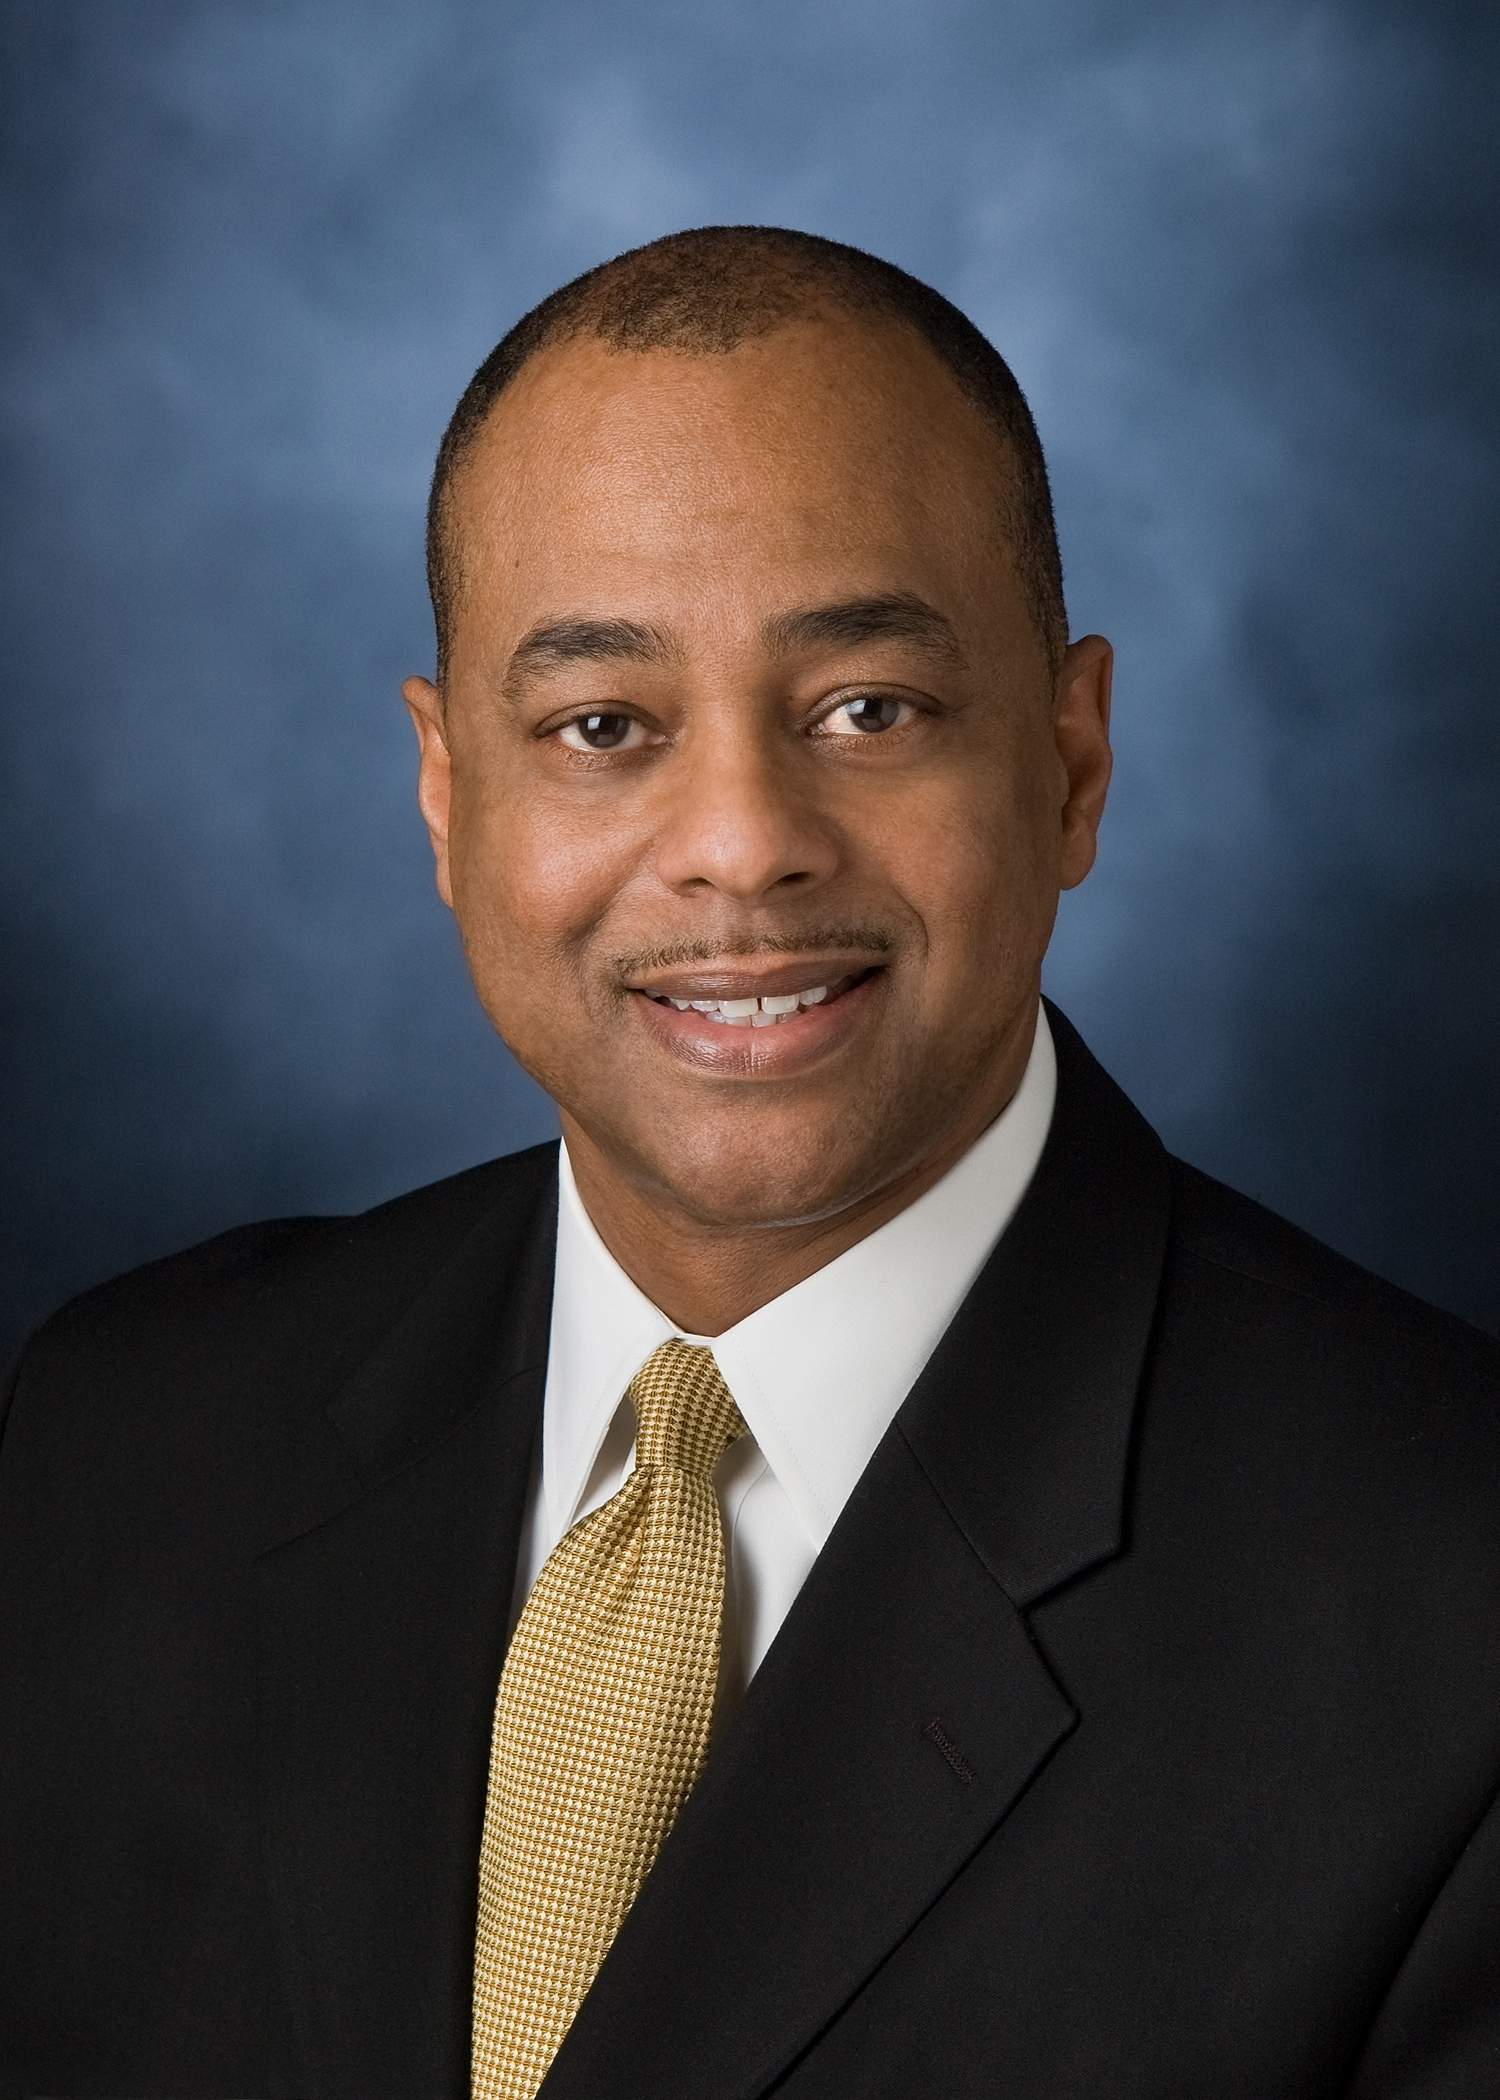 William E. Best, SVP at PNC Bank; vice chair, Rutgers board of governors.